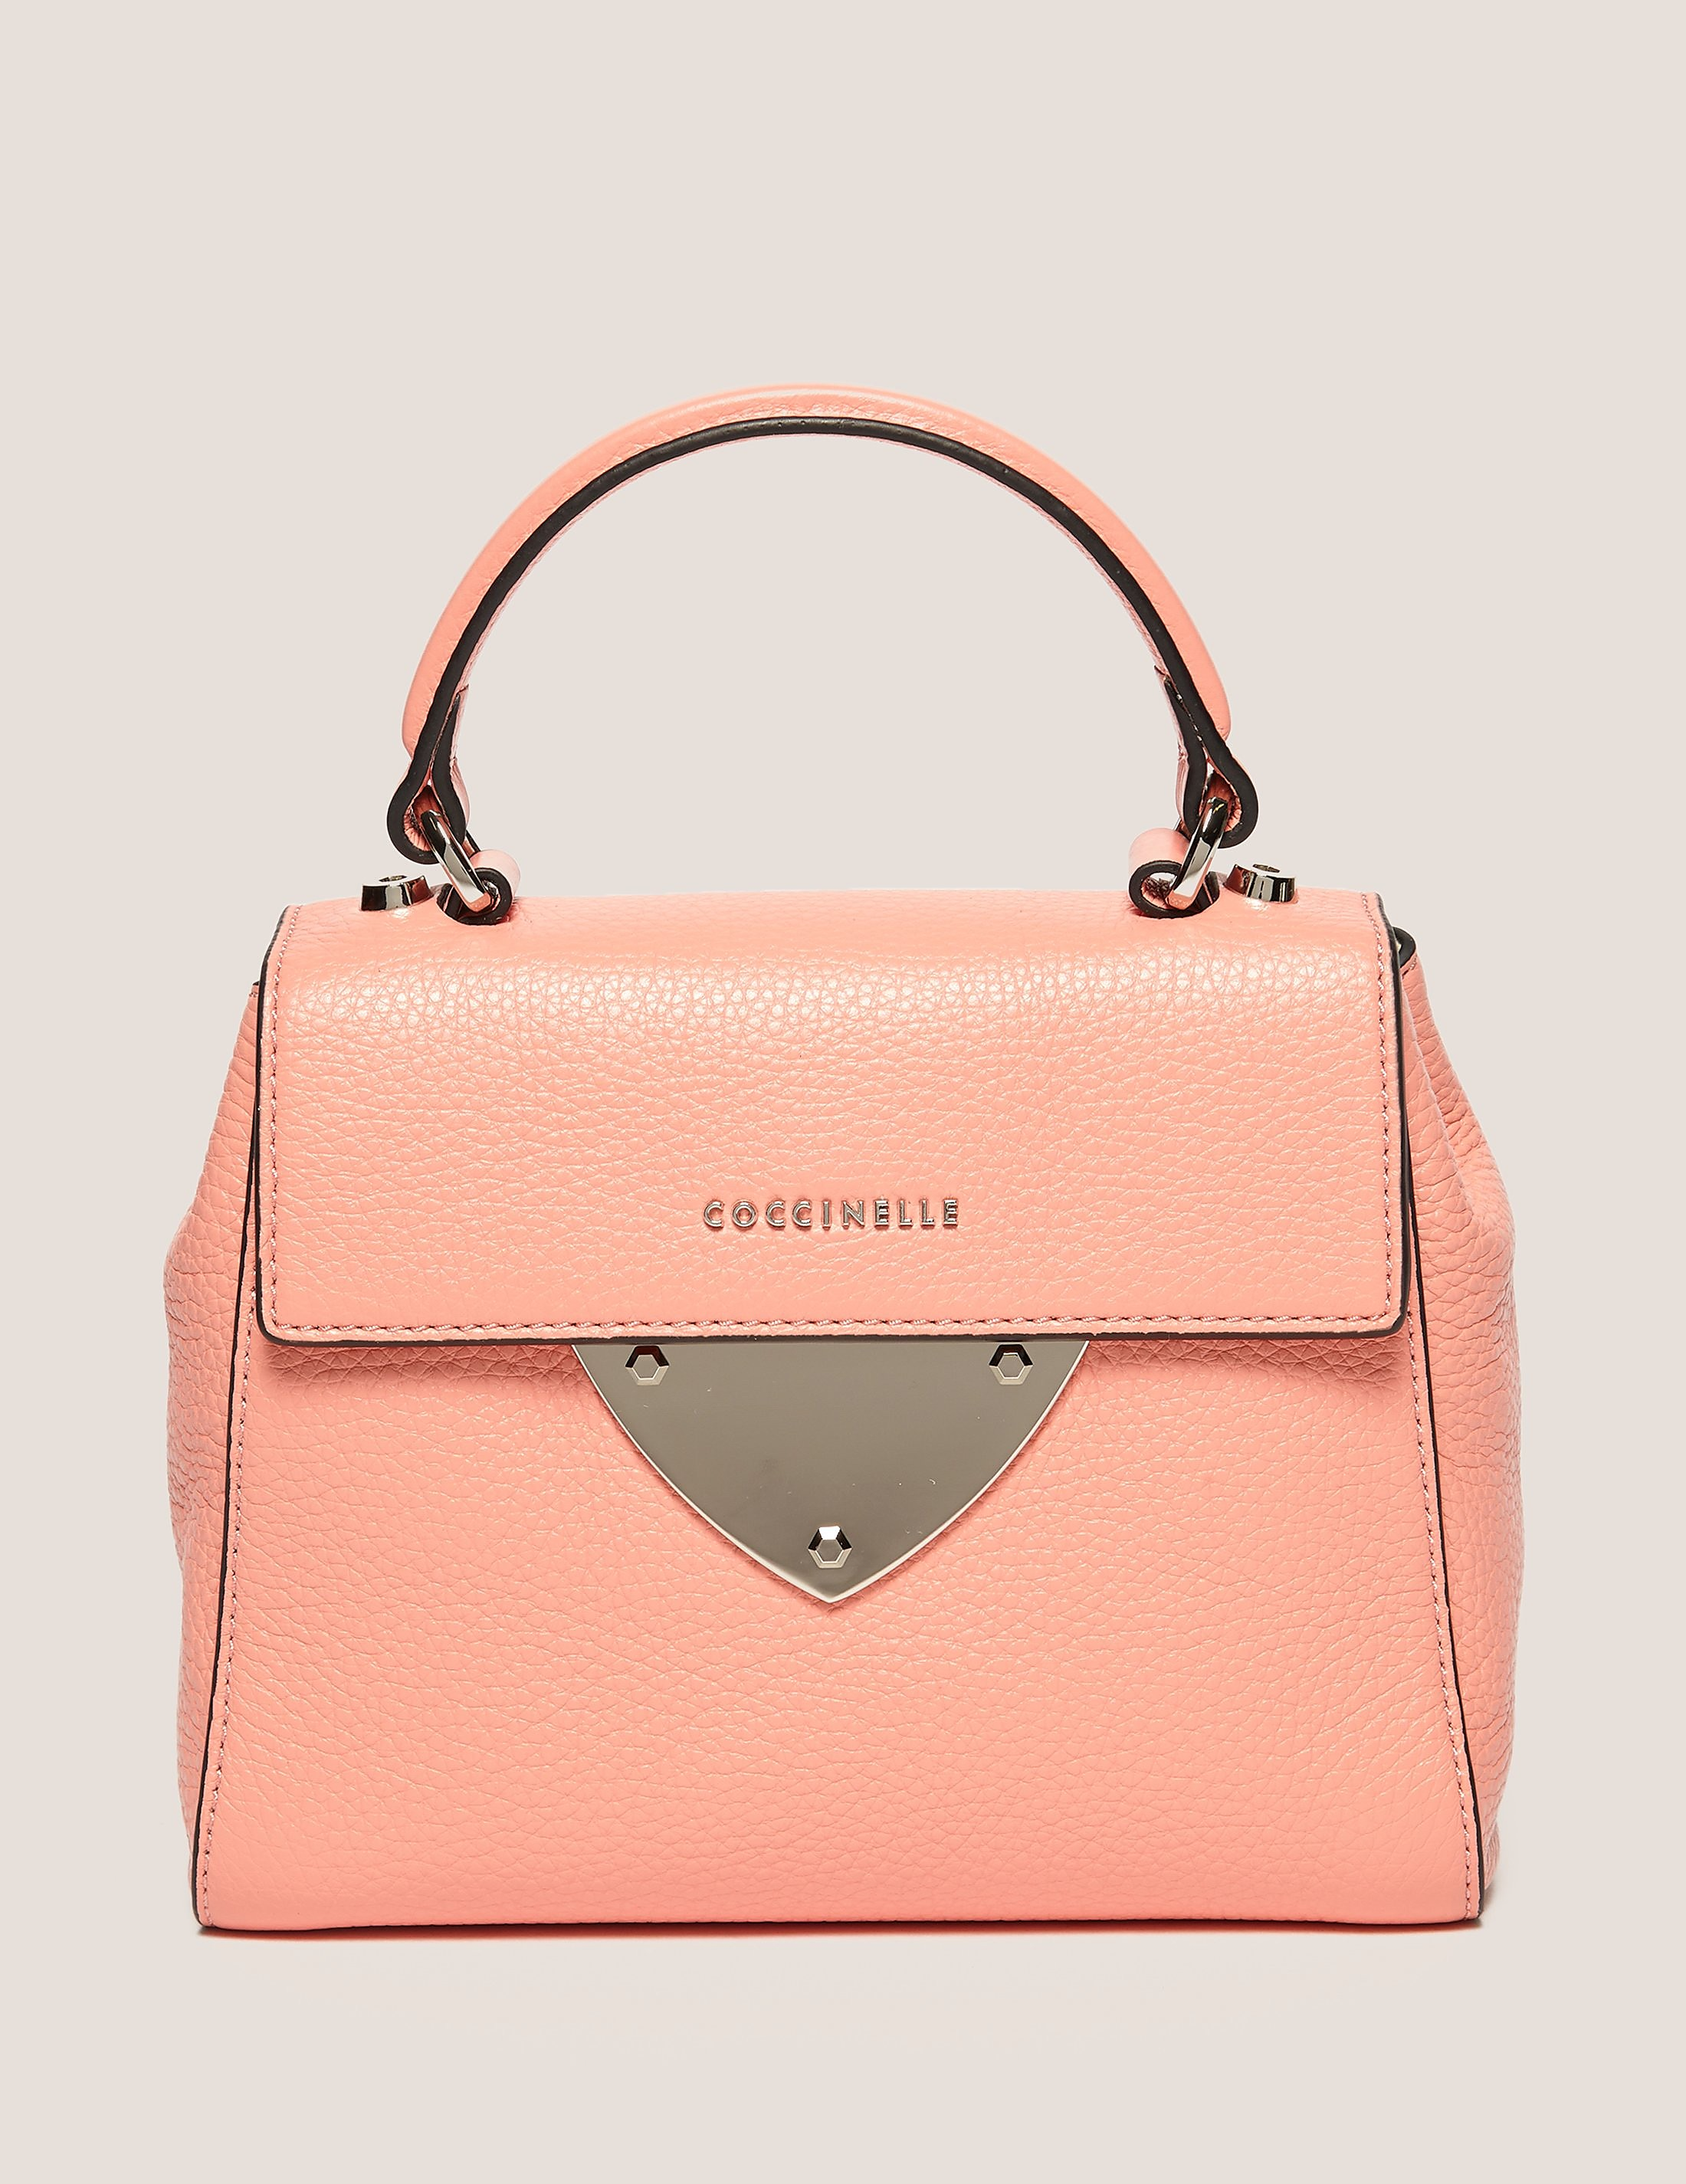 Coccinelle B14 Small Cross Body Bag